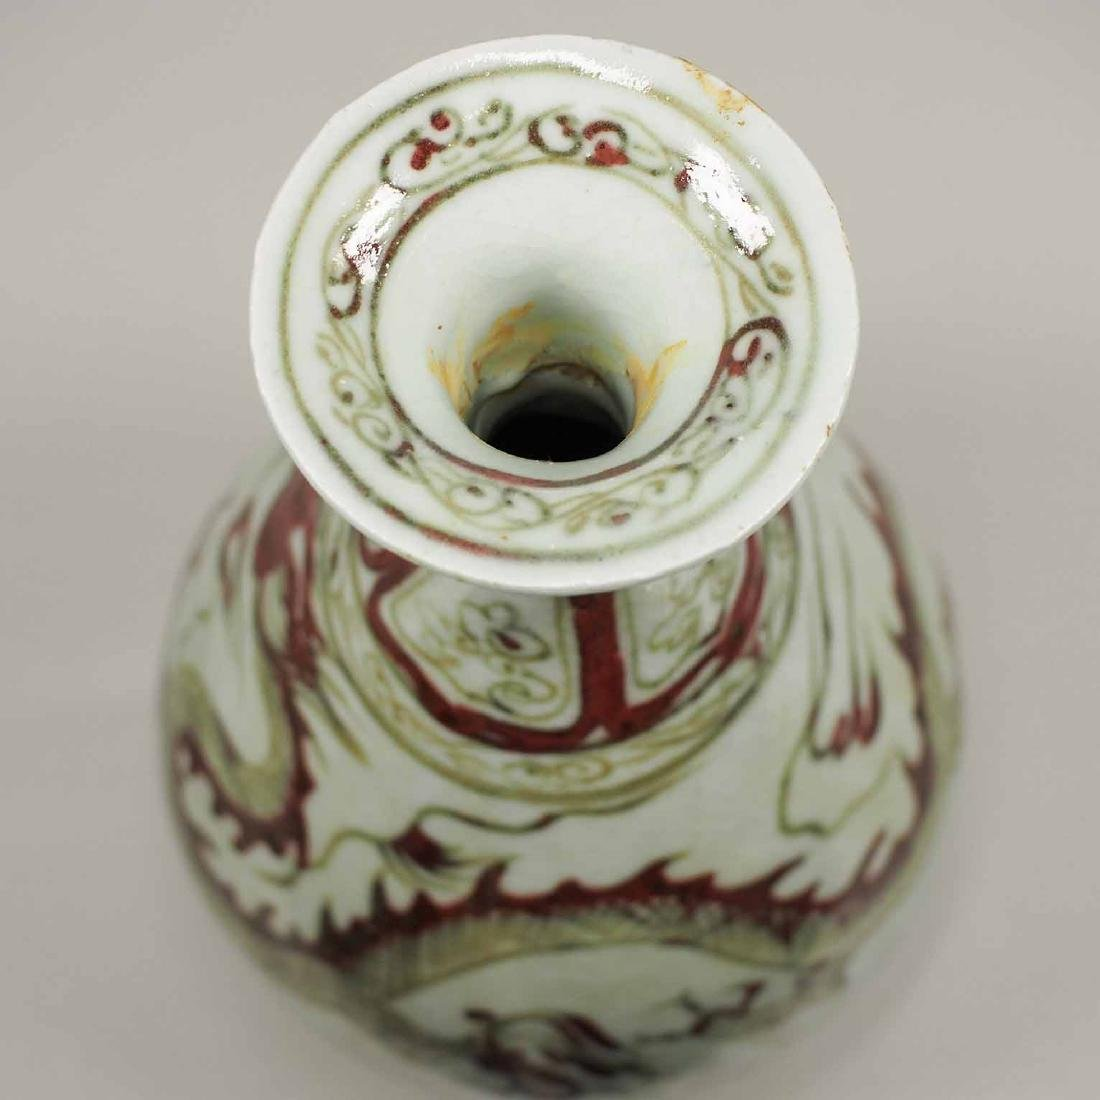 Yuhuchun Vase with Dragon Design, Yuan Dynasty - 6